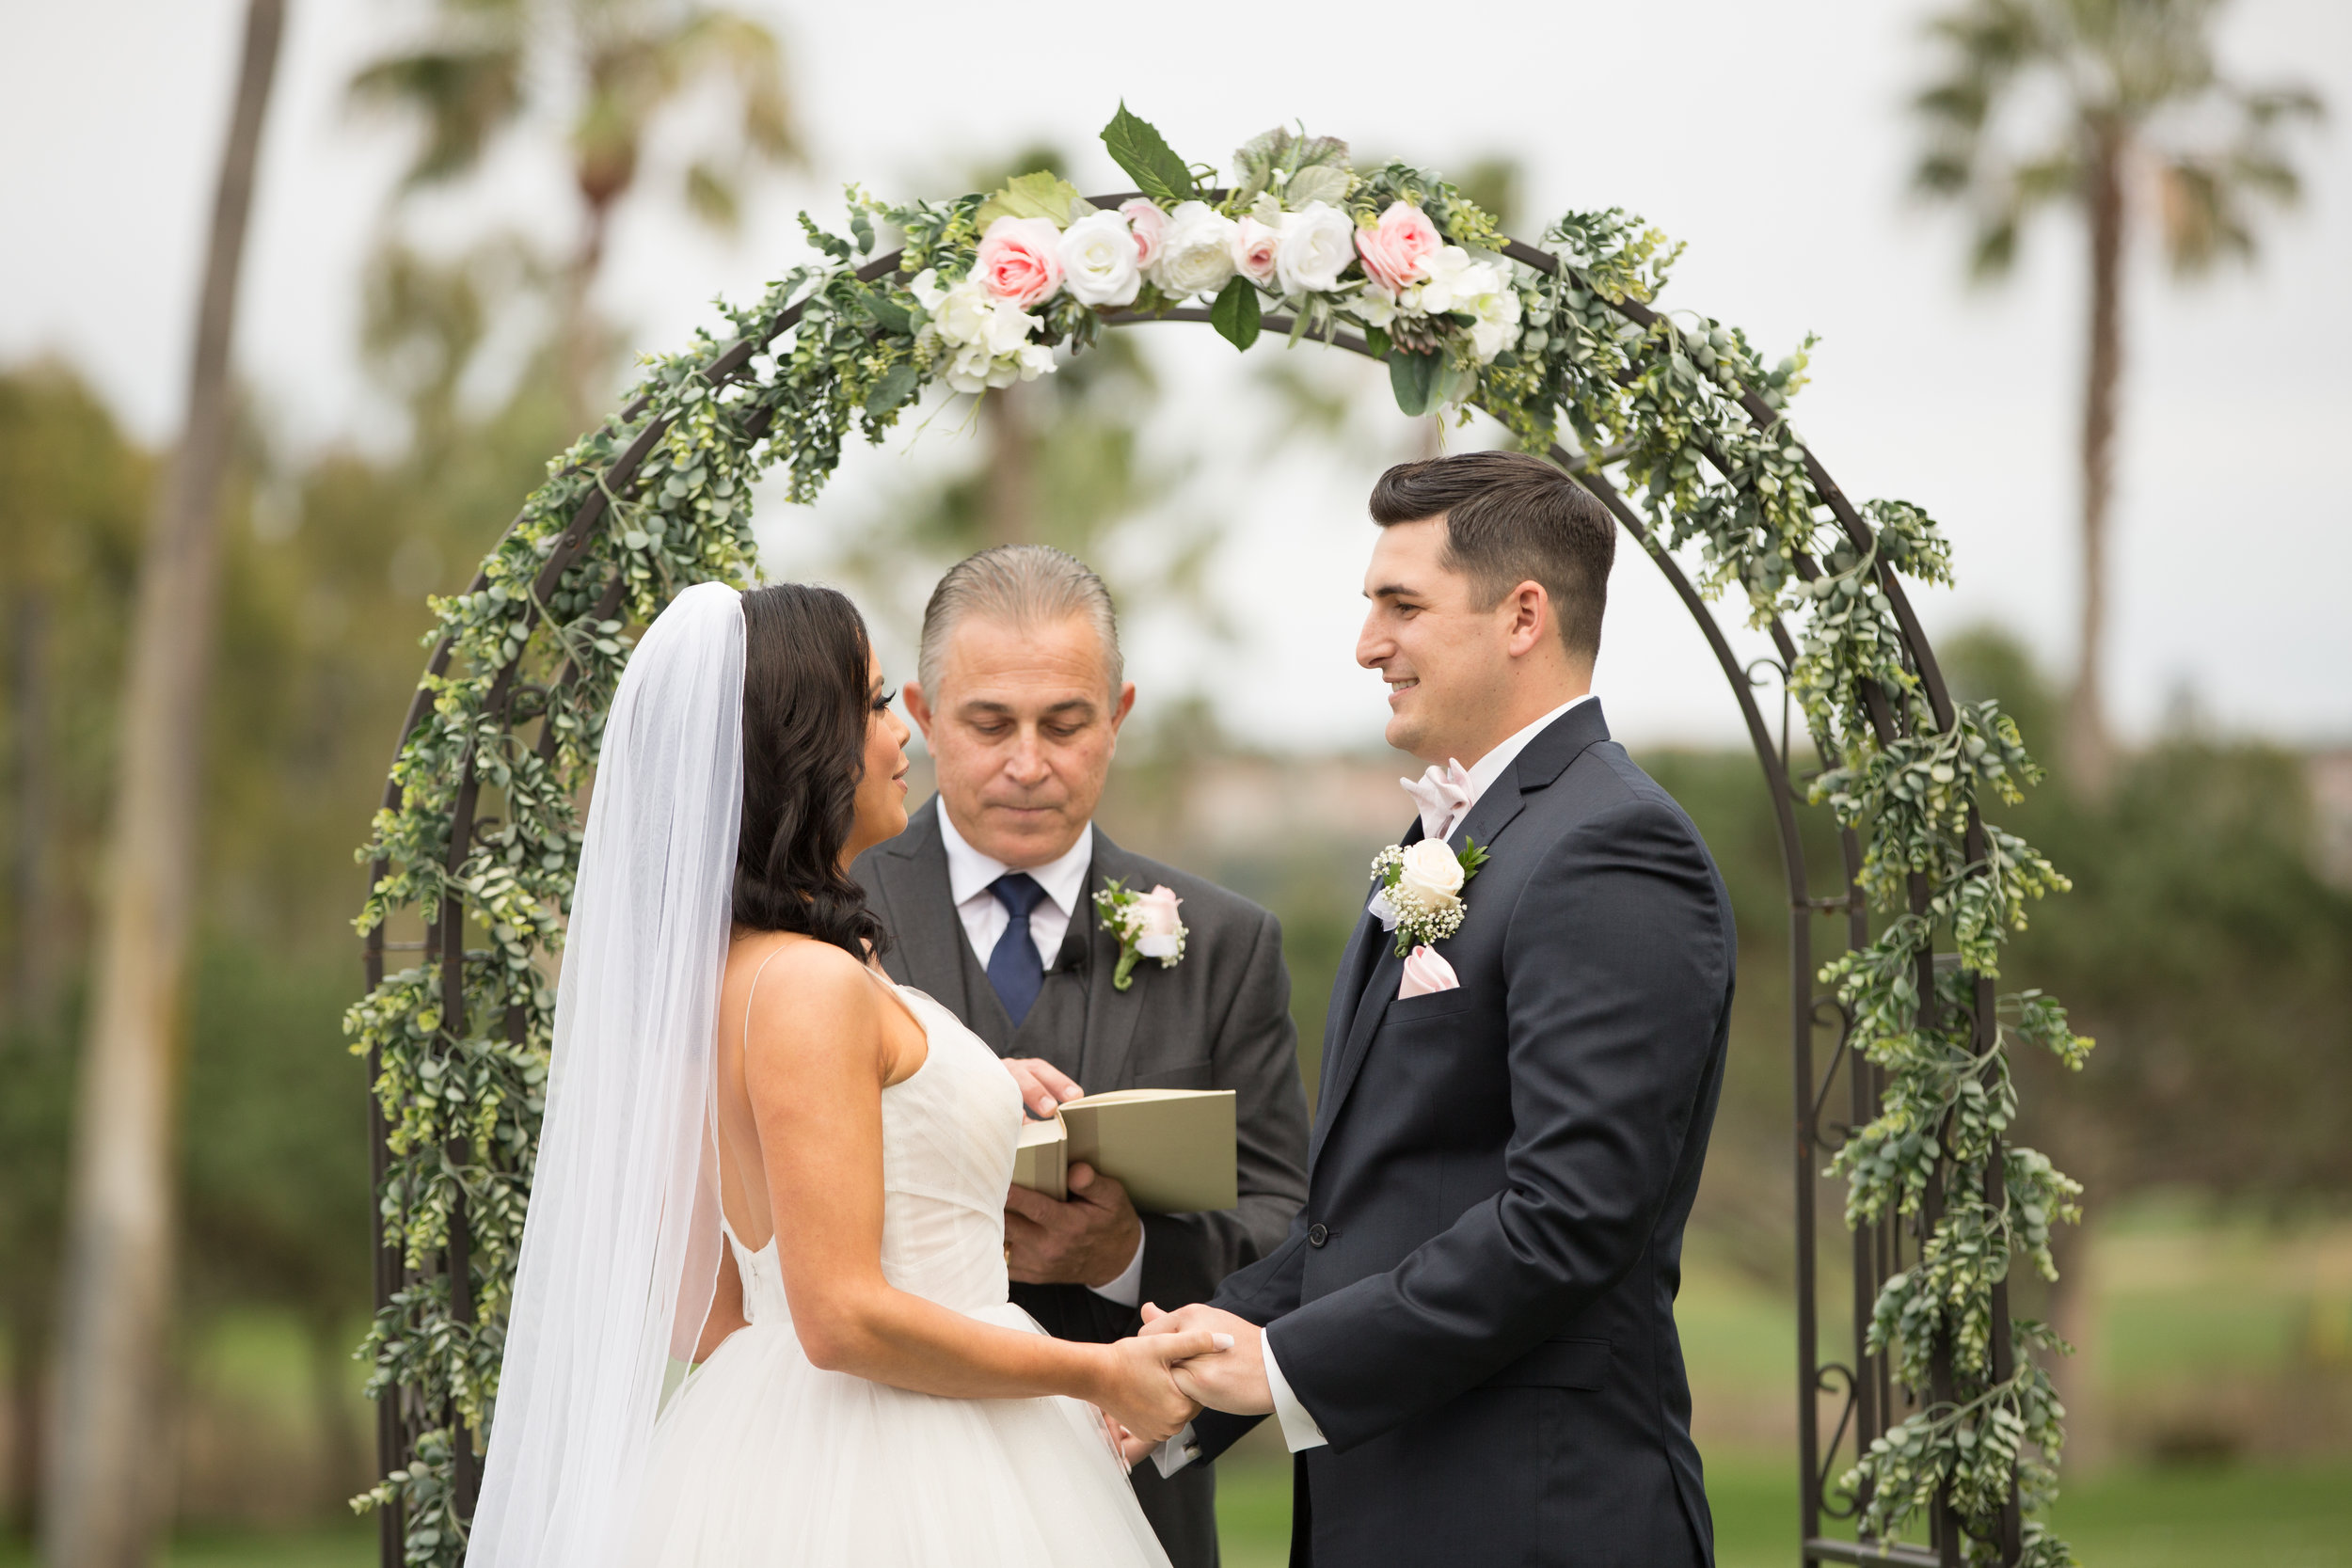 Denise and Michael-1029.jpg